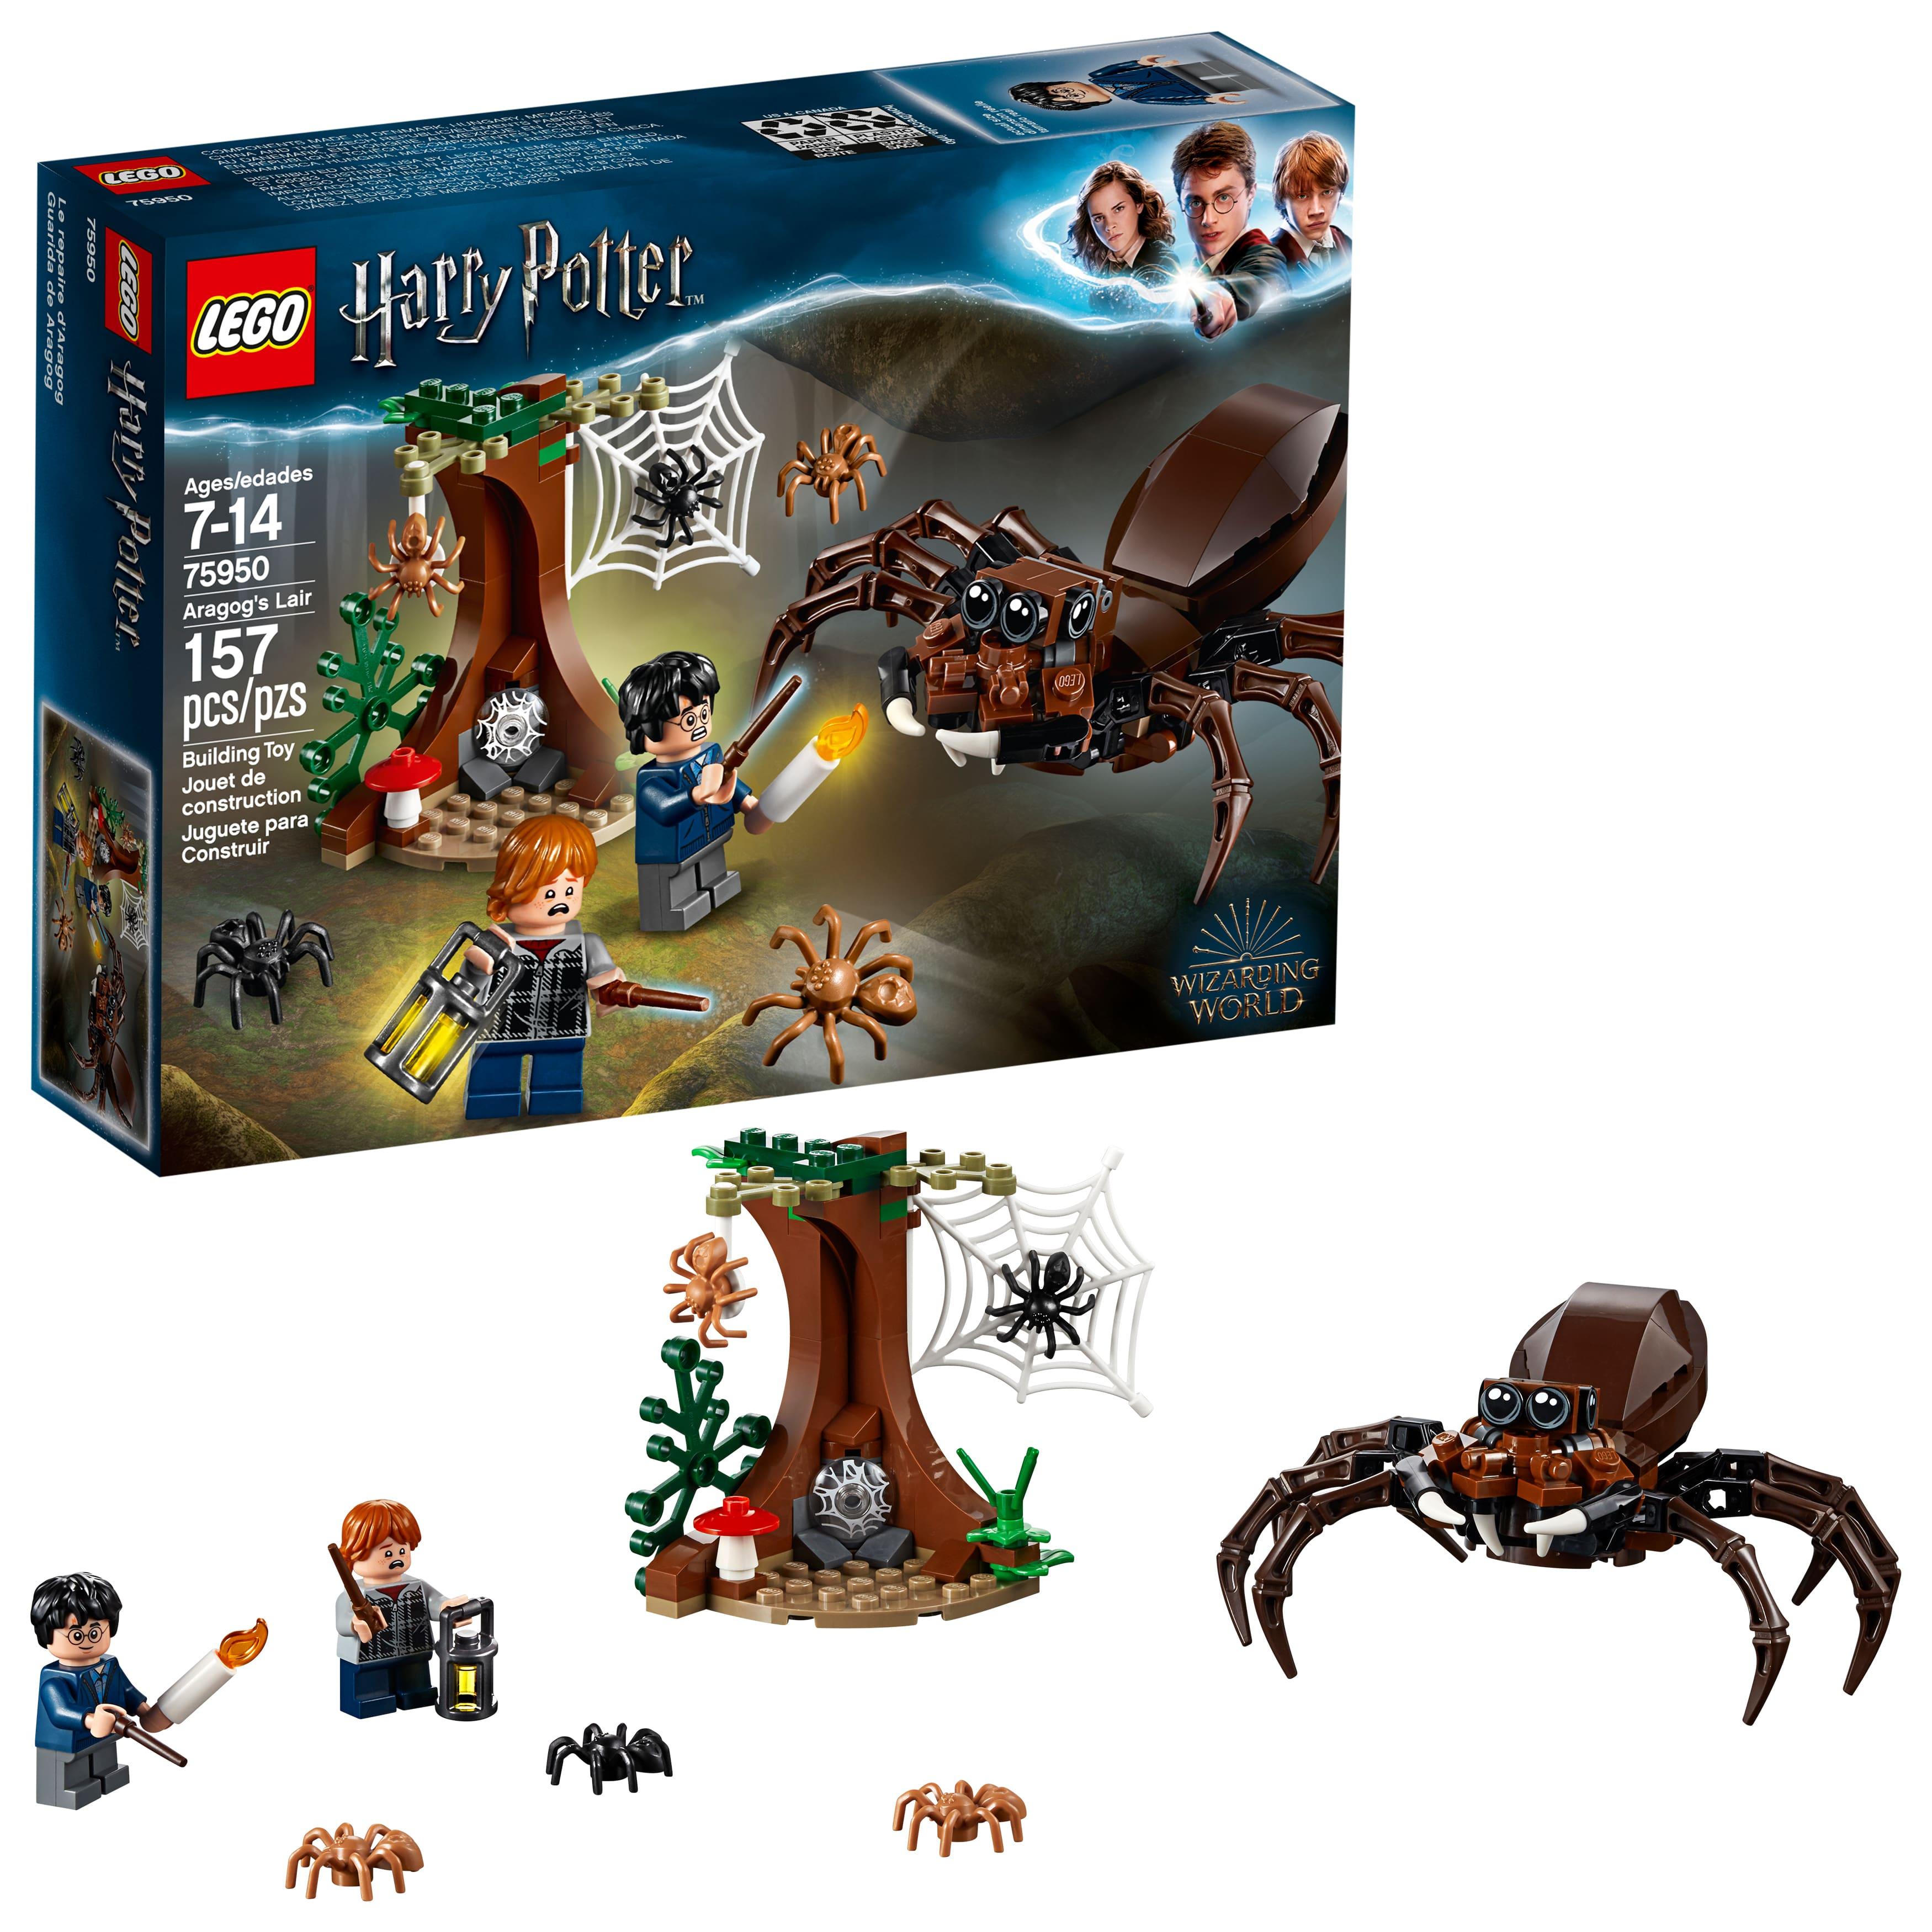 LEGO Harry Potter and The Chamber of Secrets Aragog's Lair (75950) $11.99 | Classic World Fun (10403) Kit $12.99 & More- Walmart / Amazon